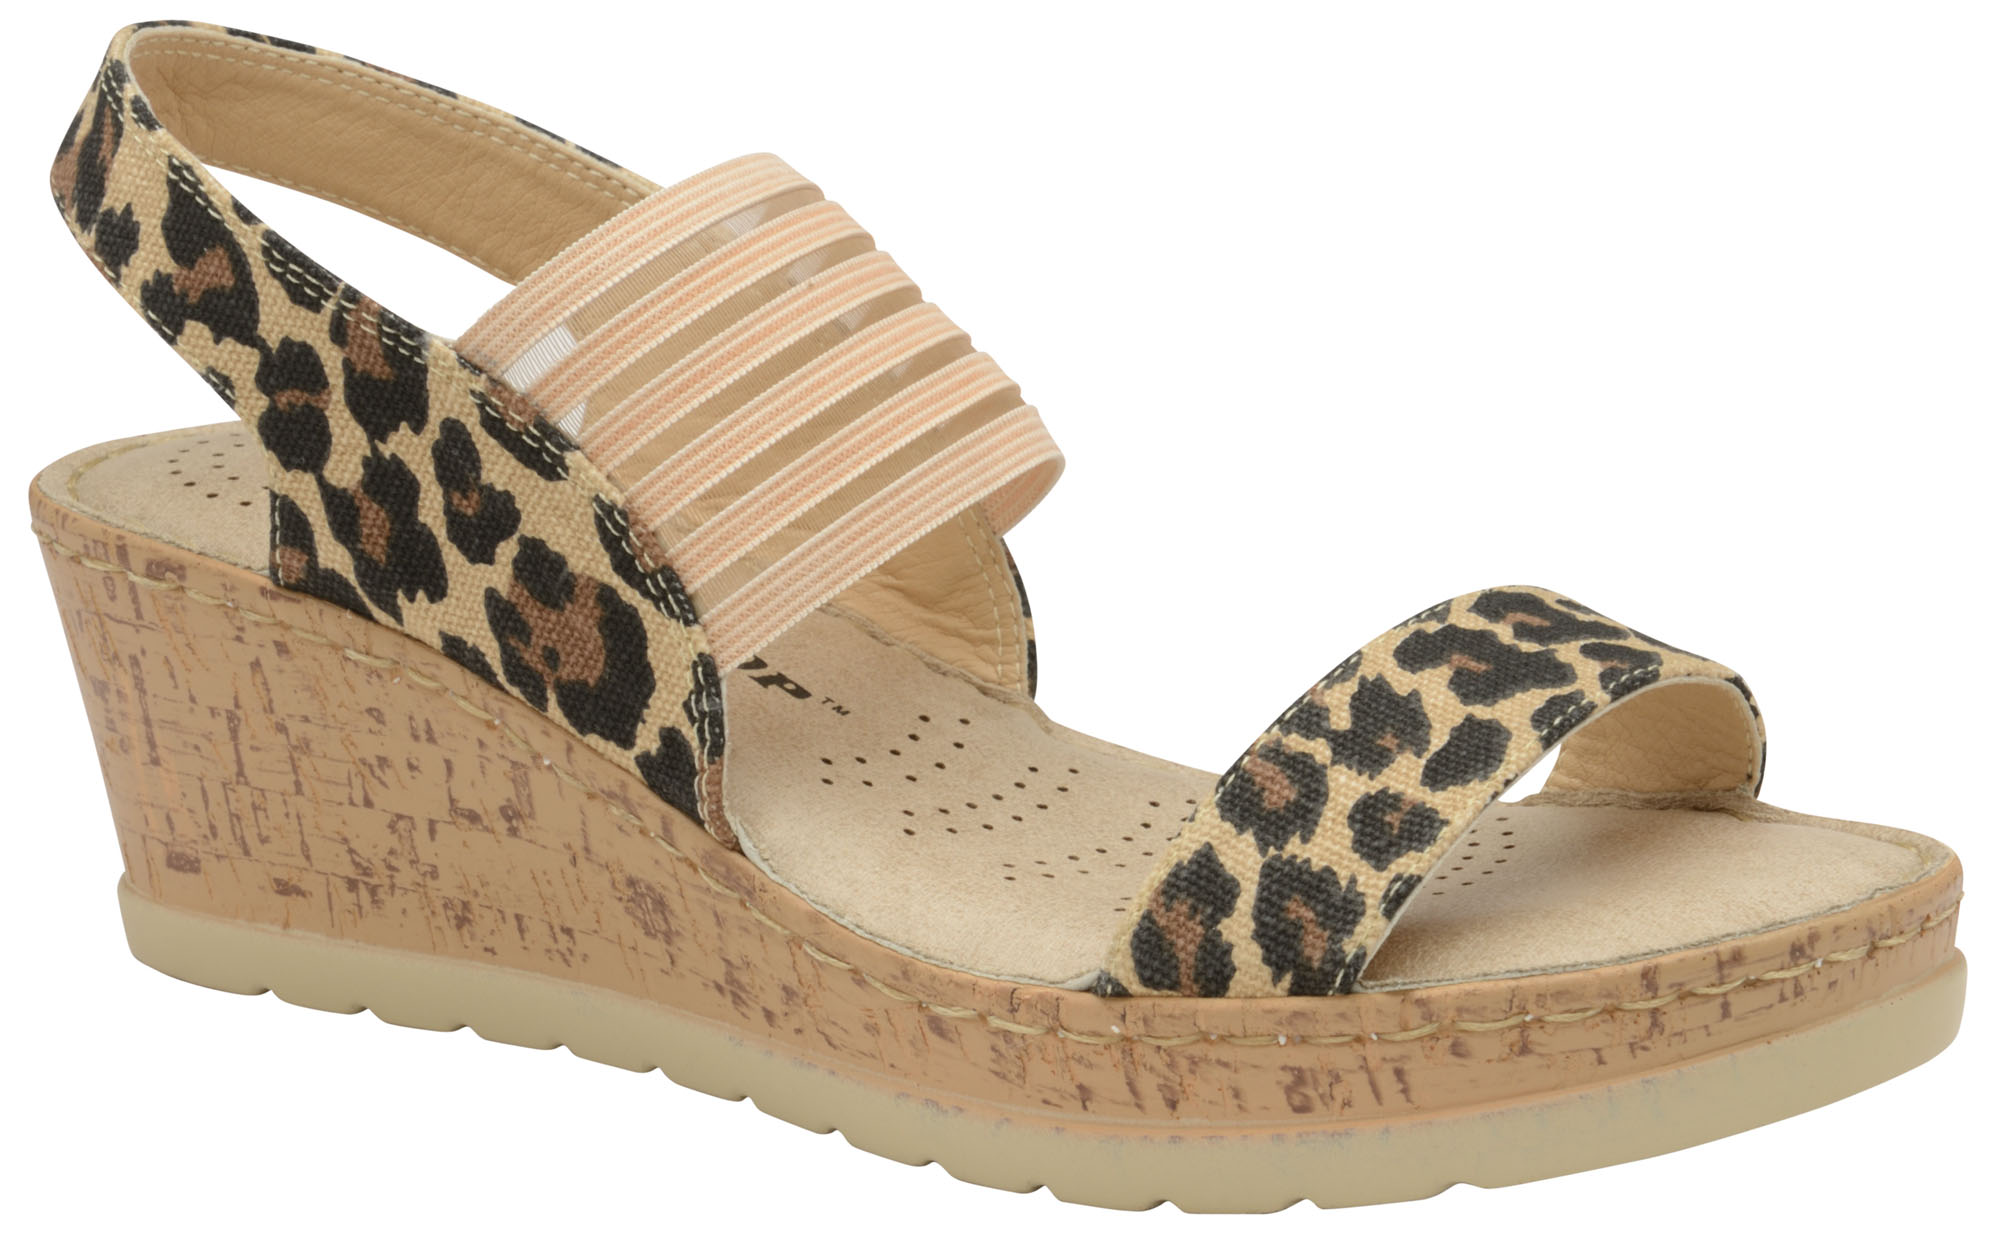 Details about Dunlop Ladies Womens Slip On Strappy Wedge Sandals Leopard Print Shoes Sizes 3 8